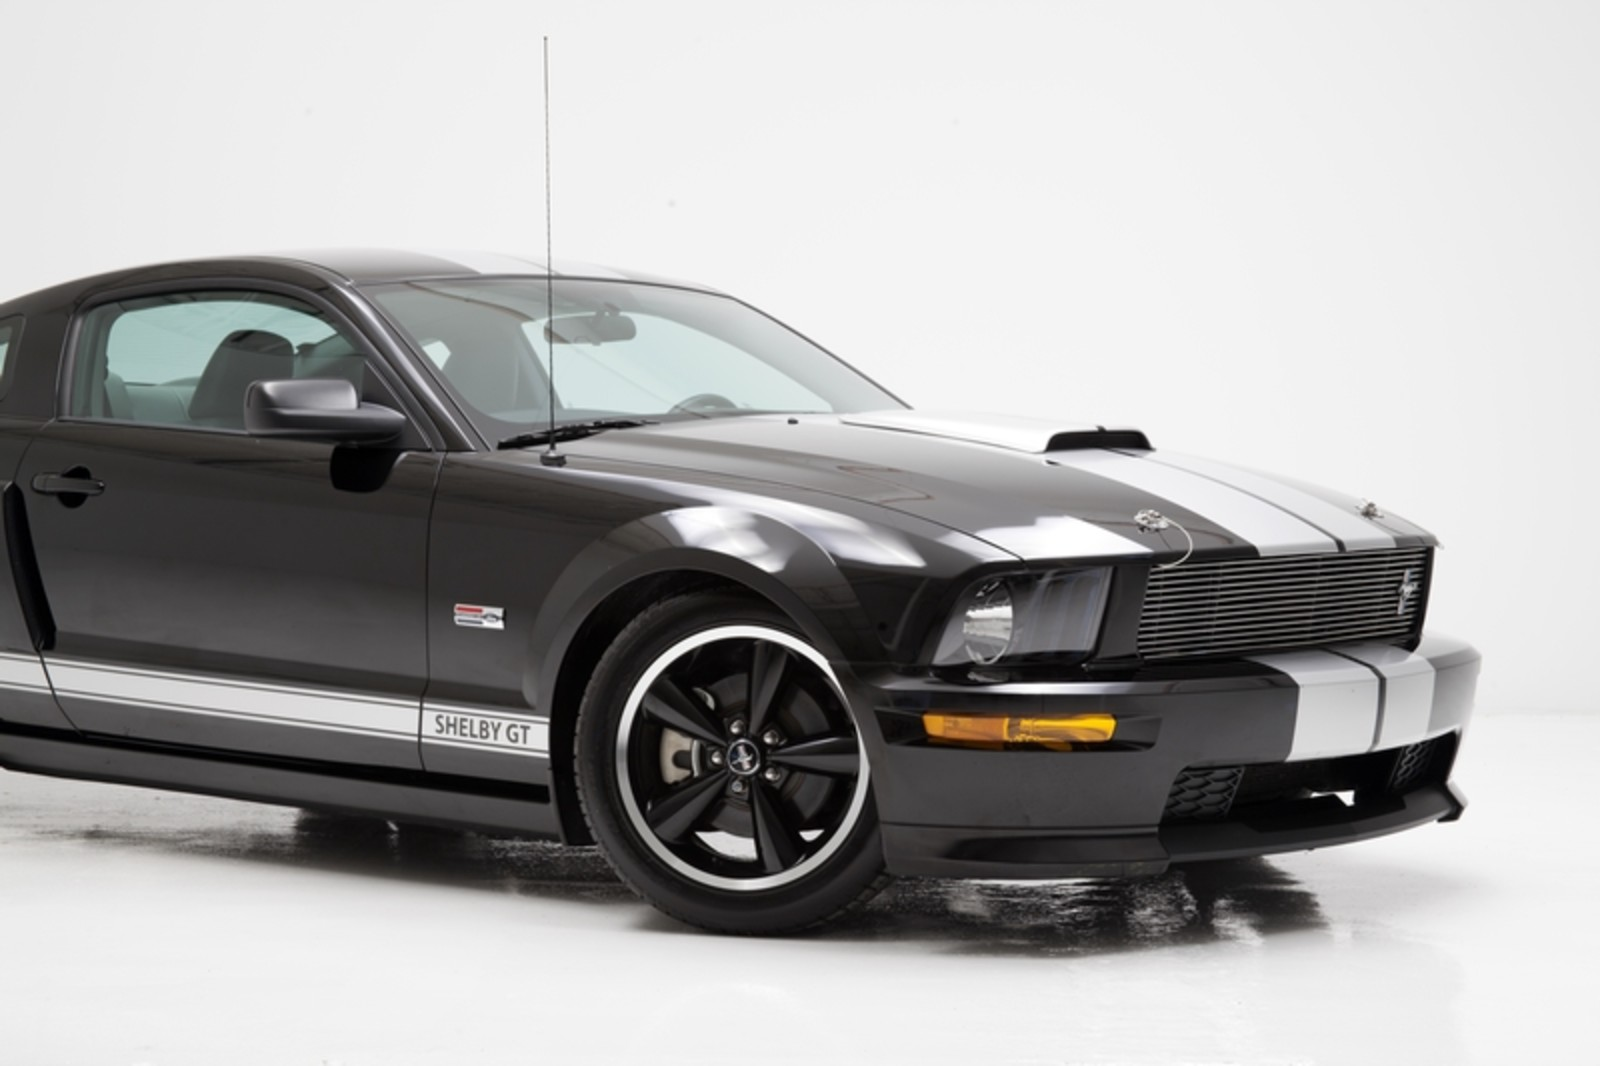 2007 ford mustang gt shelby gt rare automatic ultra low. Black Bedroom Furniture Sets. Home Design Ideas